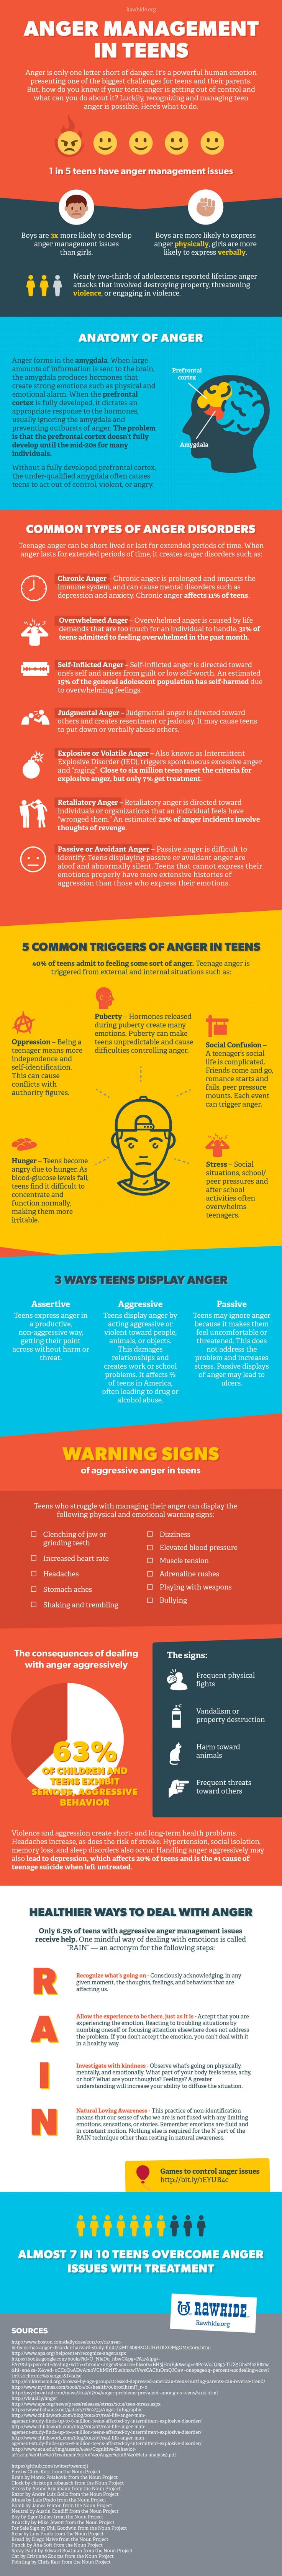 Teen Anger Management - Types, Trigger and Treatment. I appreciate this is not Autism specific, but knowing these facts has helped me be more aware of the drivers behind autistic meltdowns & outbursts